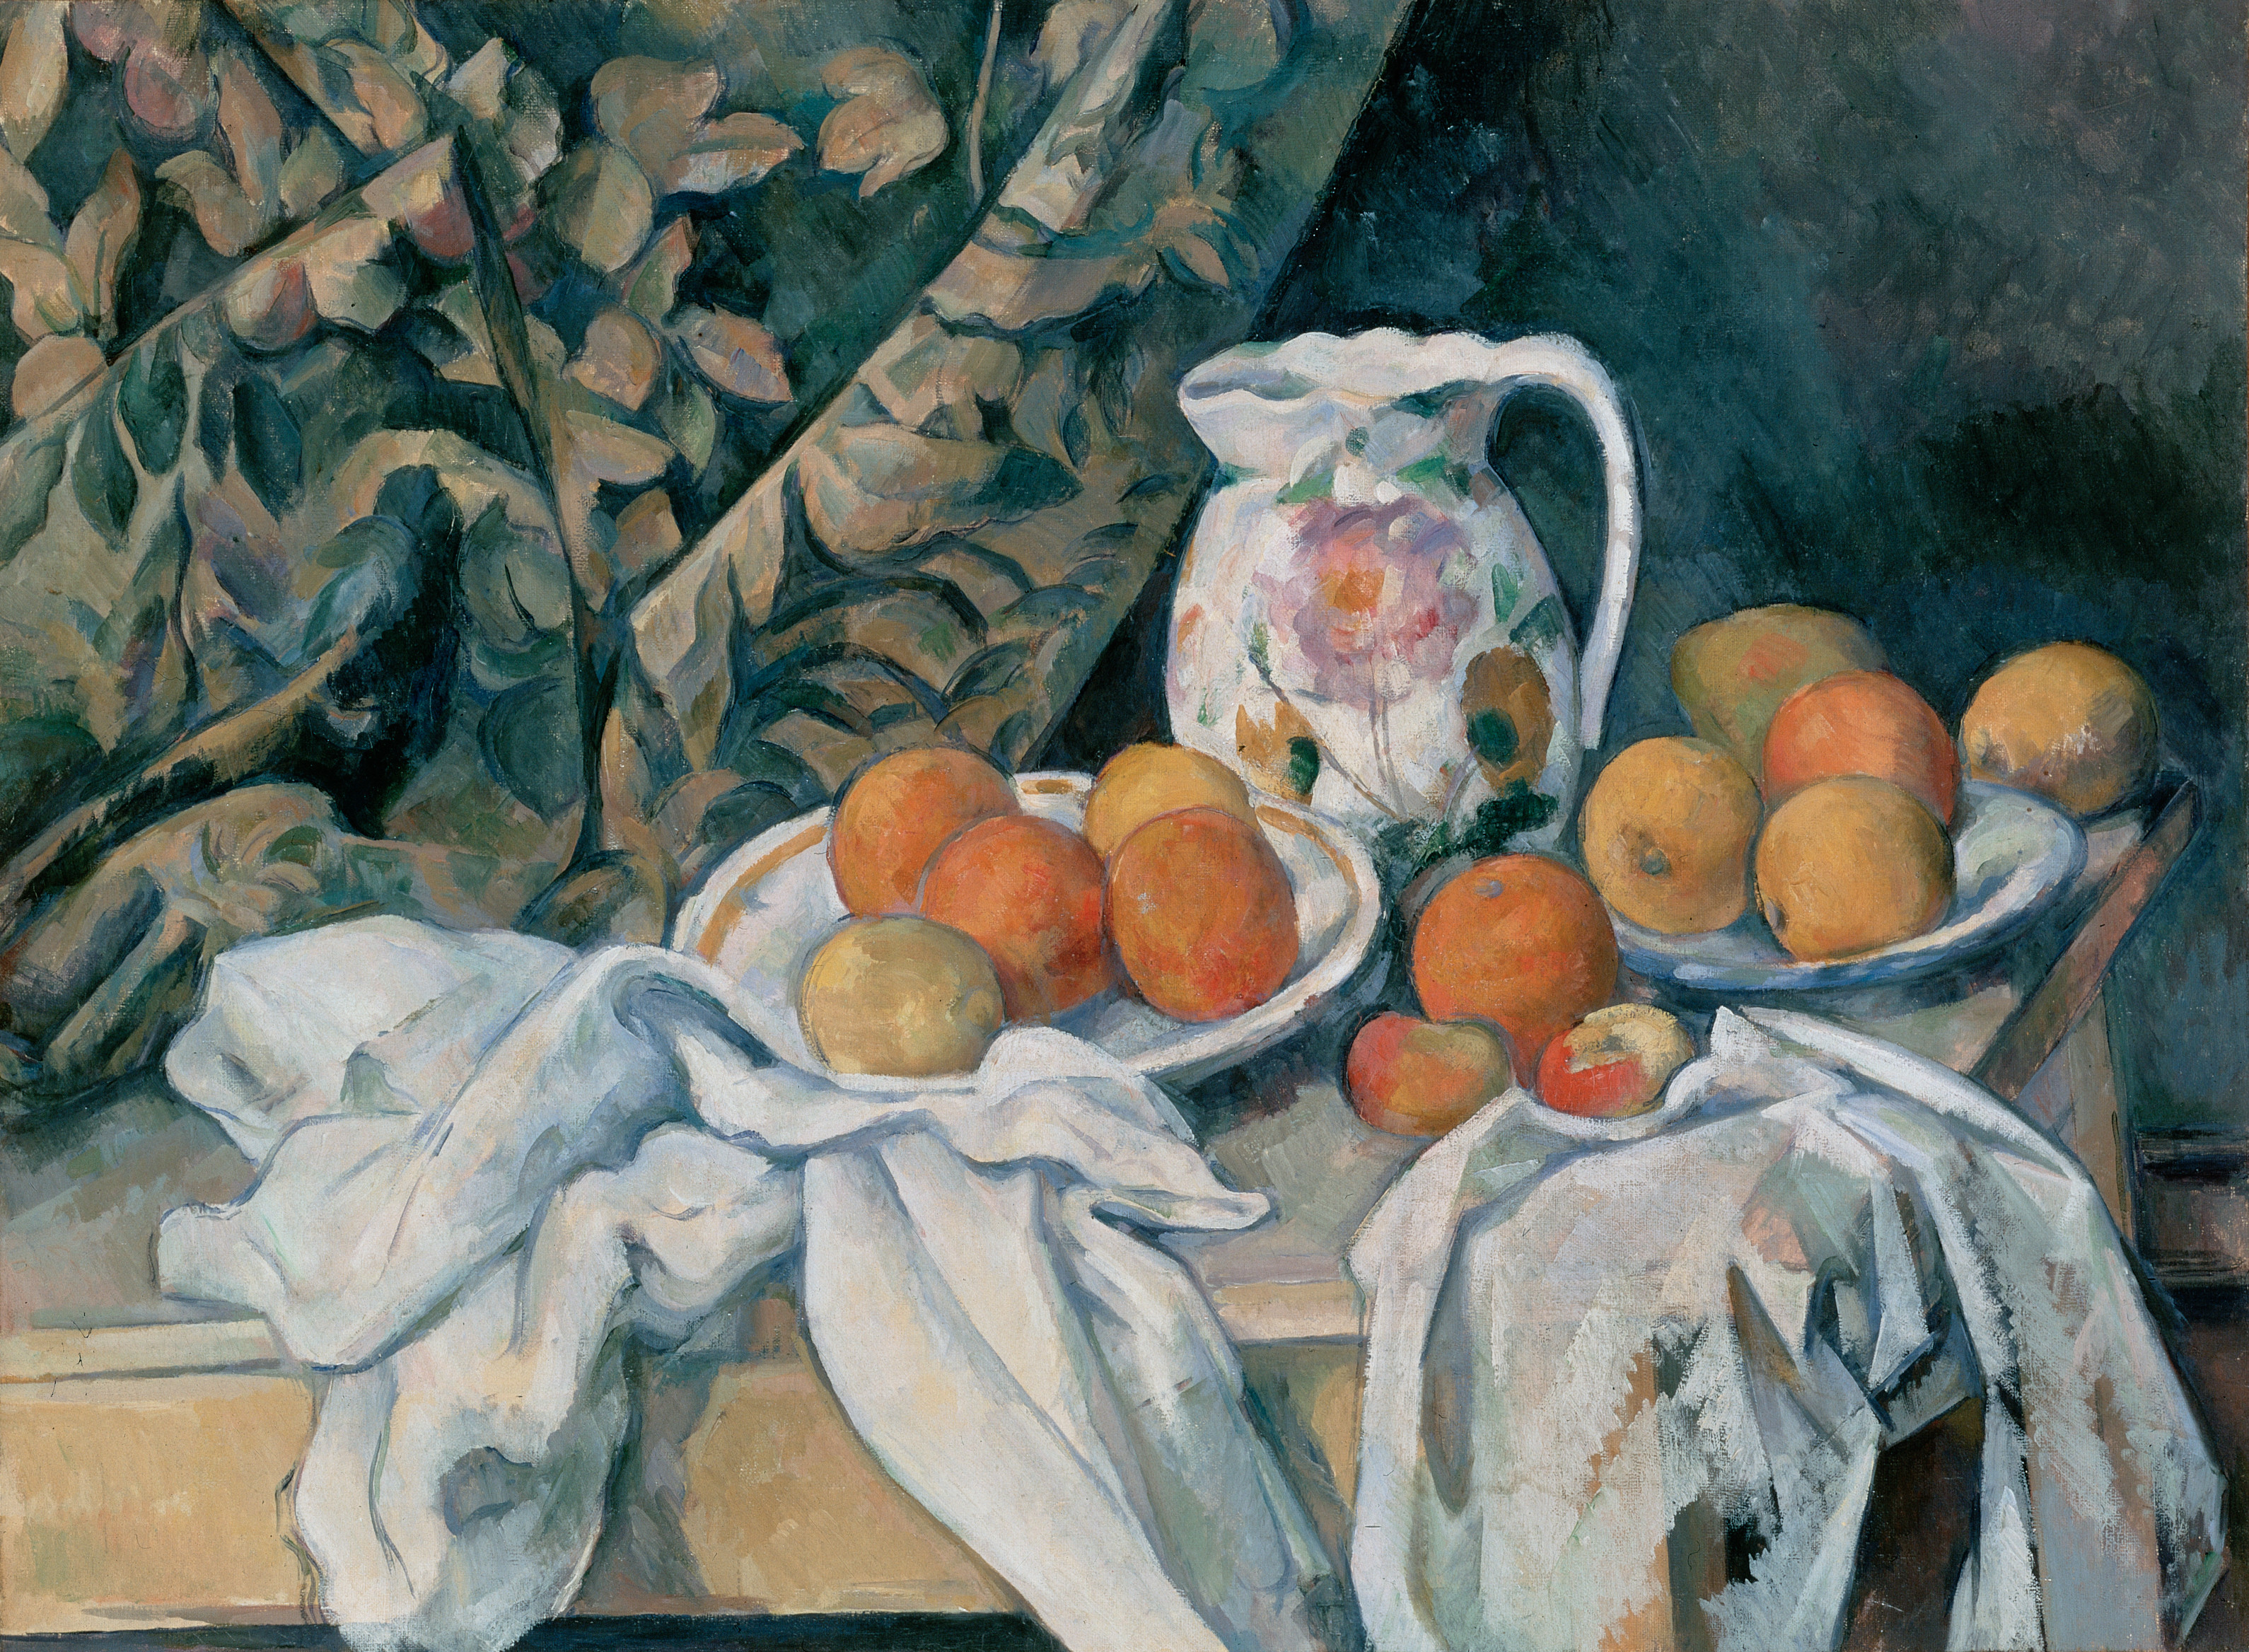 File:Cézanne, Paul - Still Life with a Curtain.jpg - Wikipedia, the ...